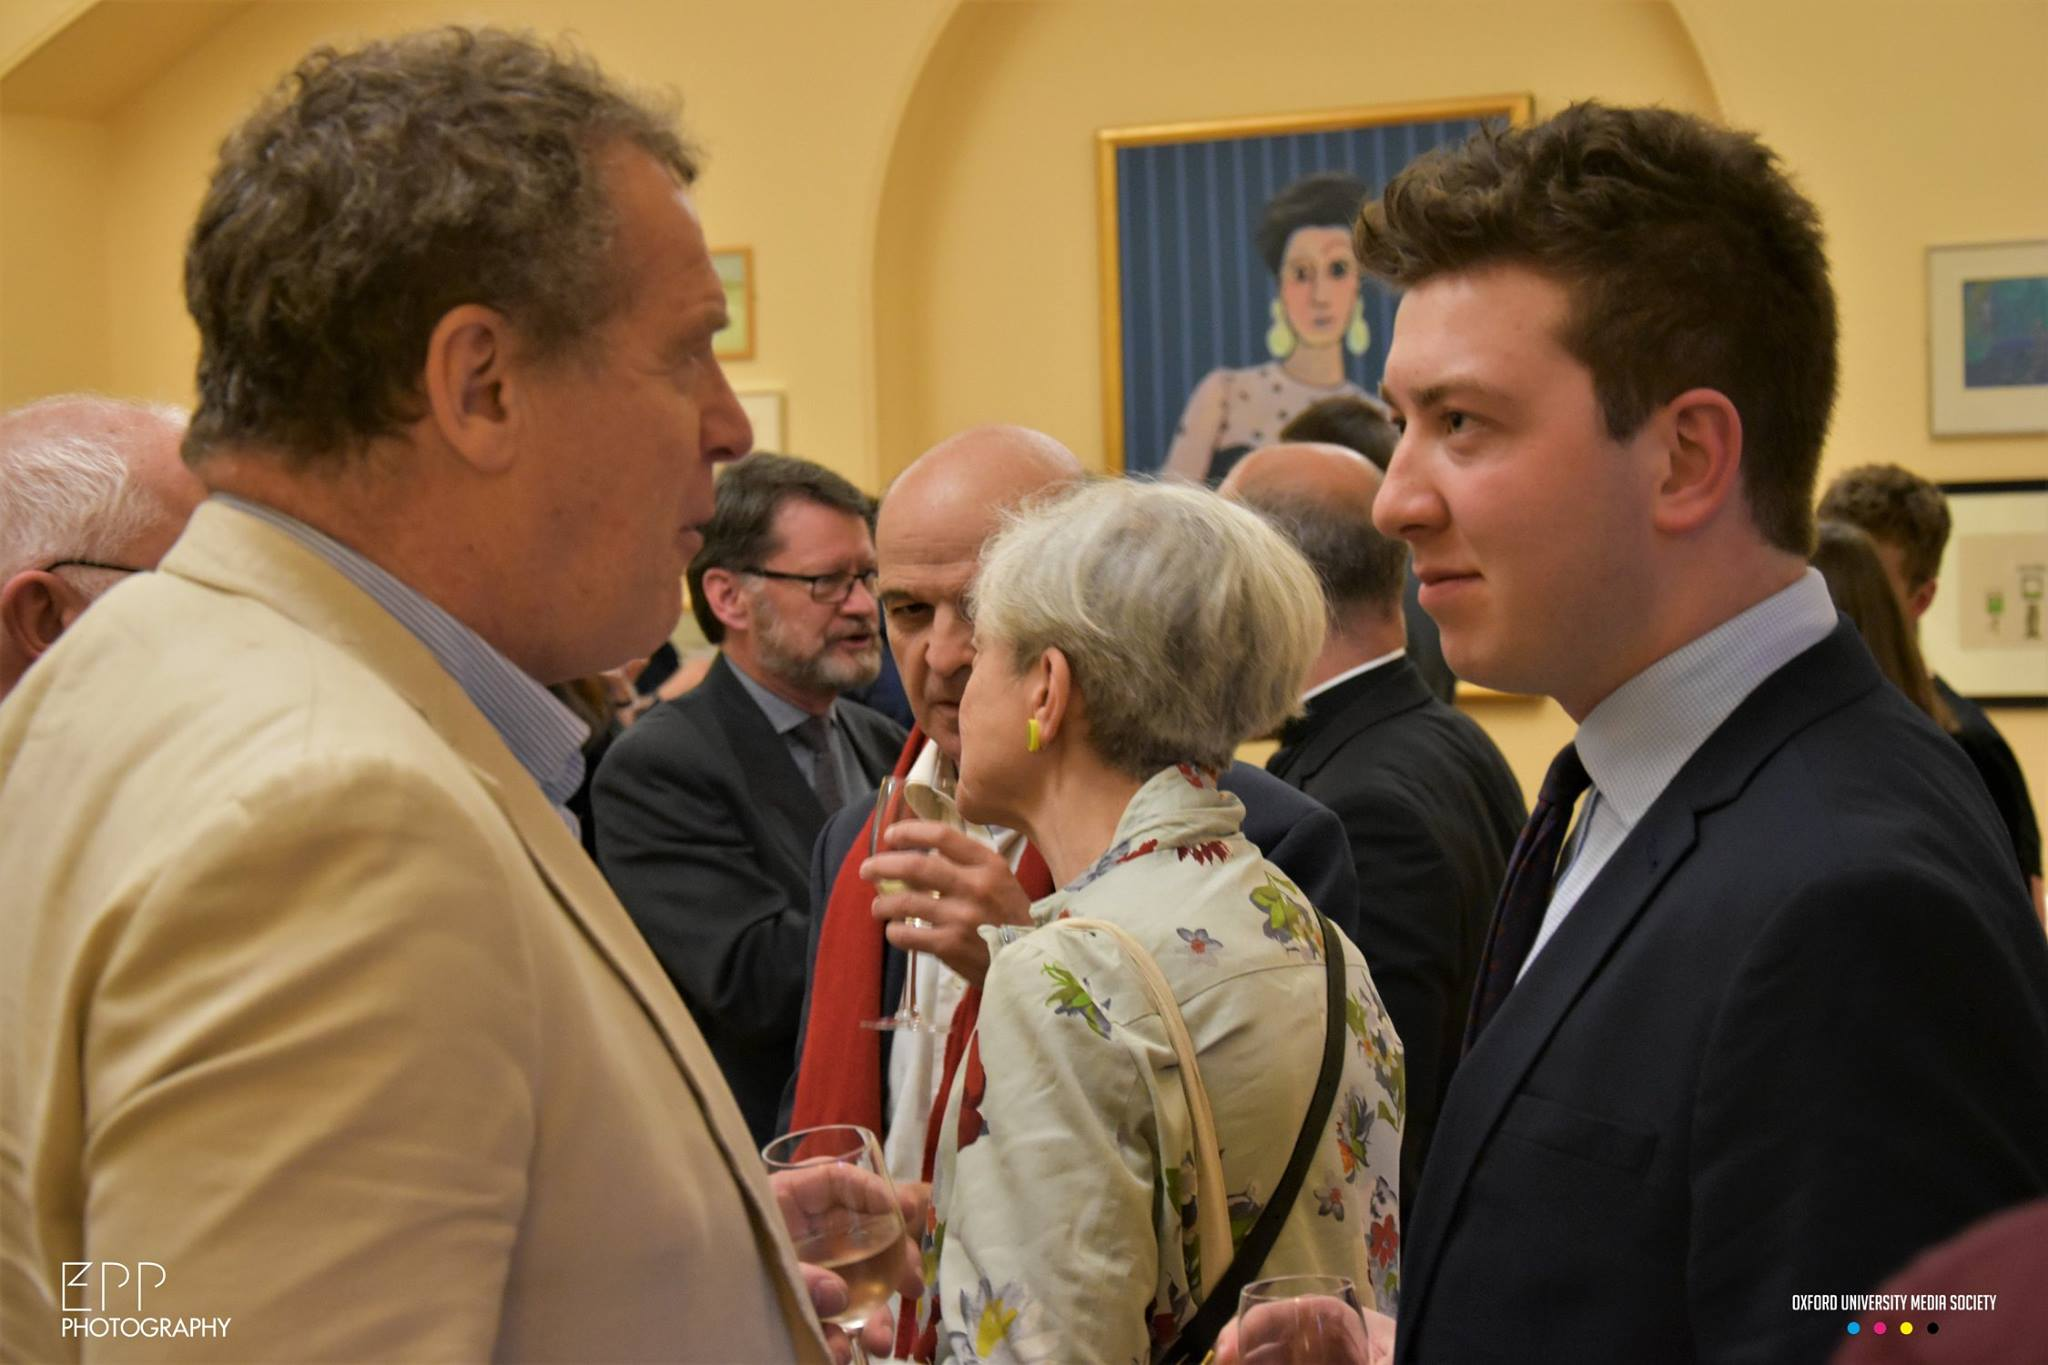 Speaking to colleagues and friends at an Oxford event.